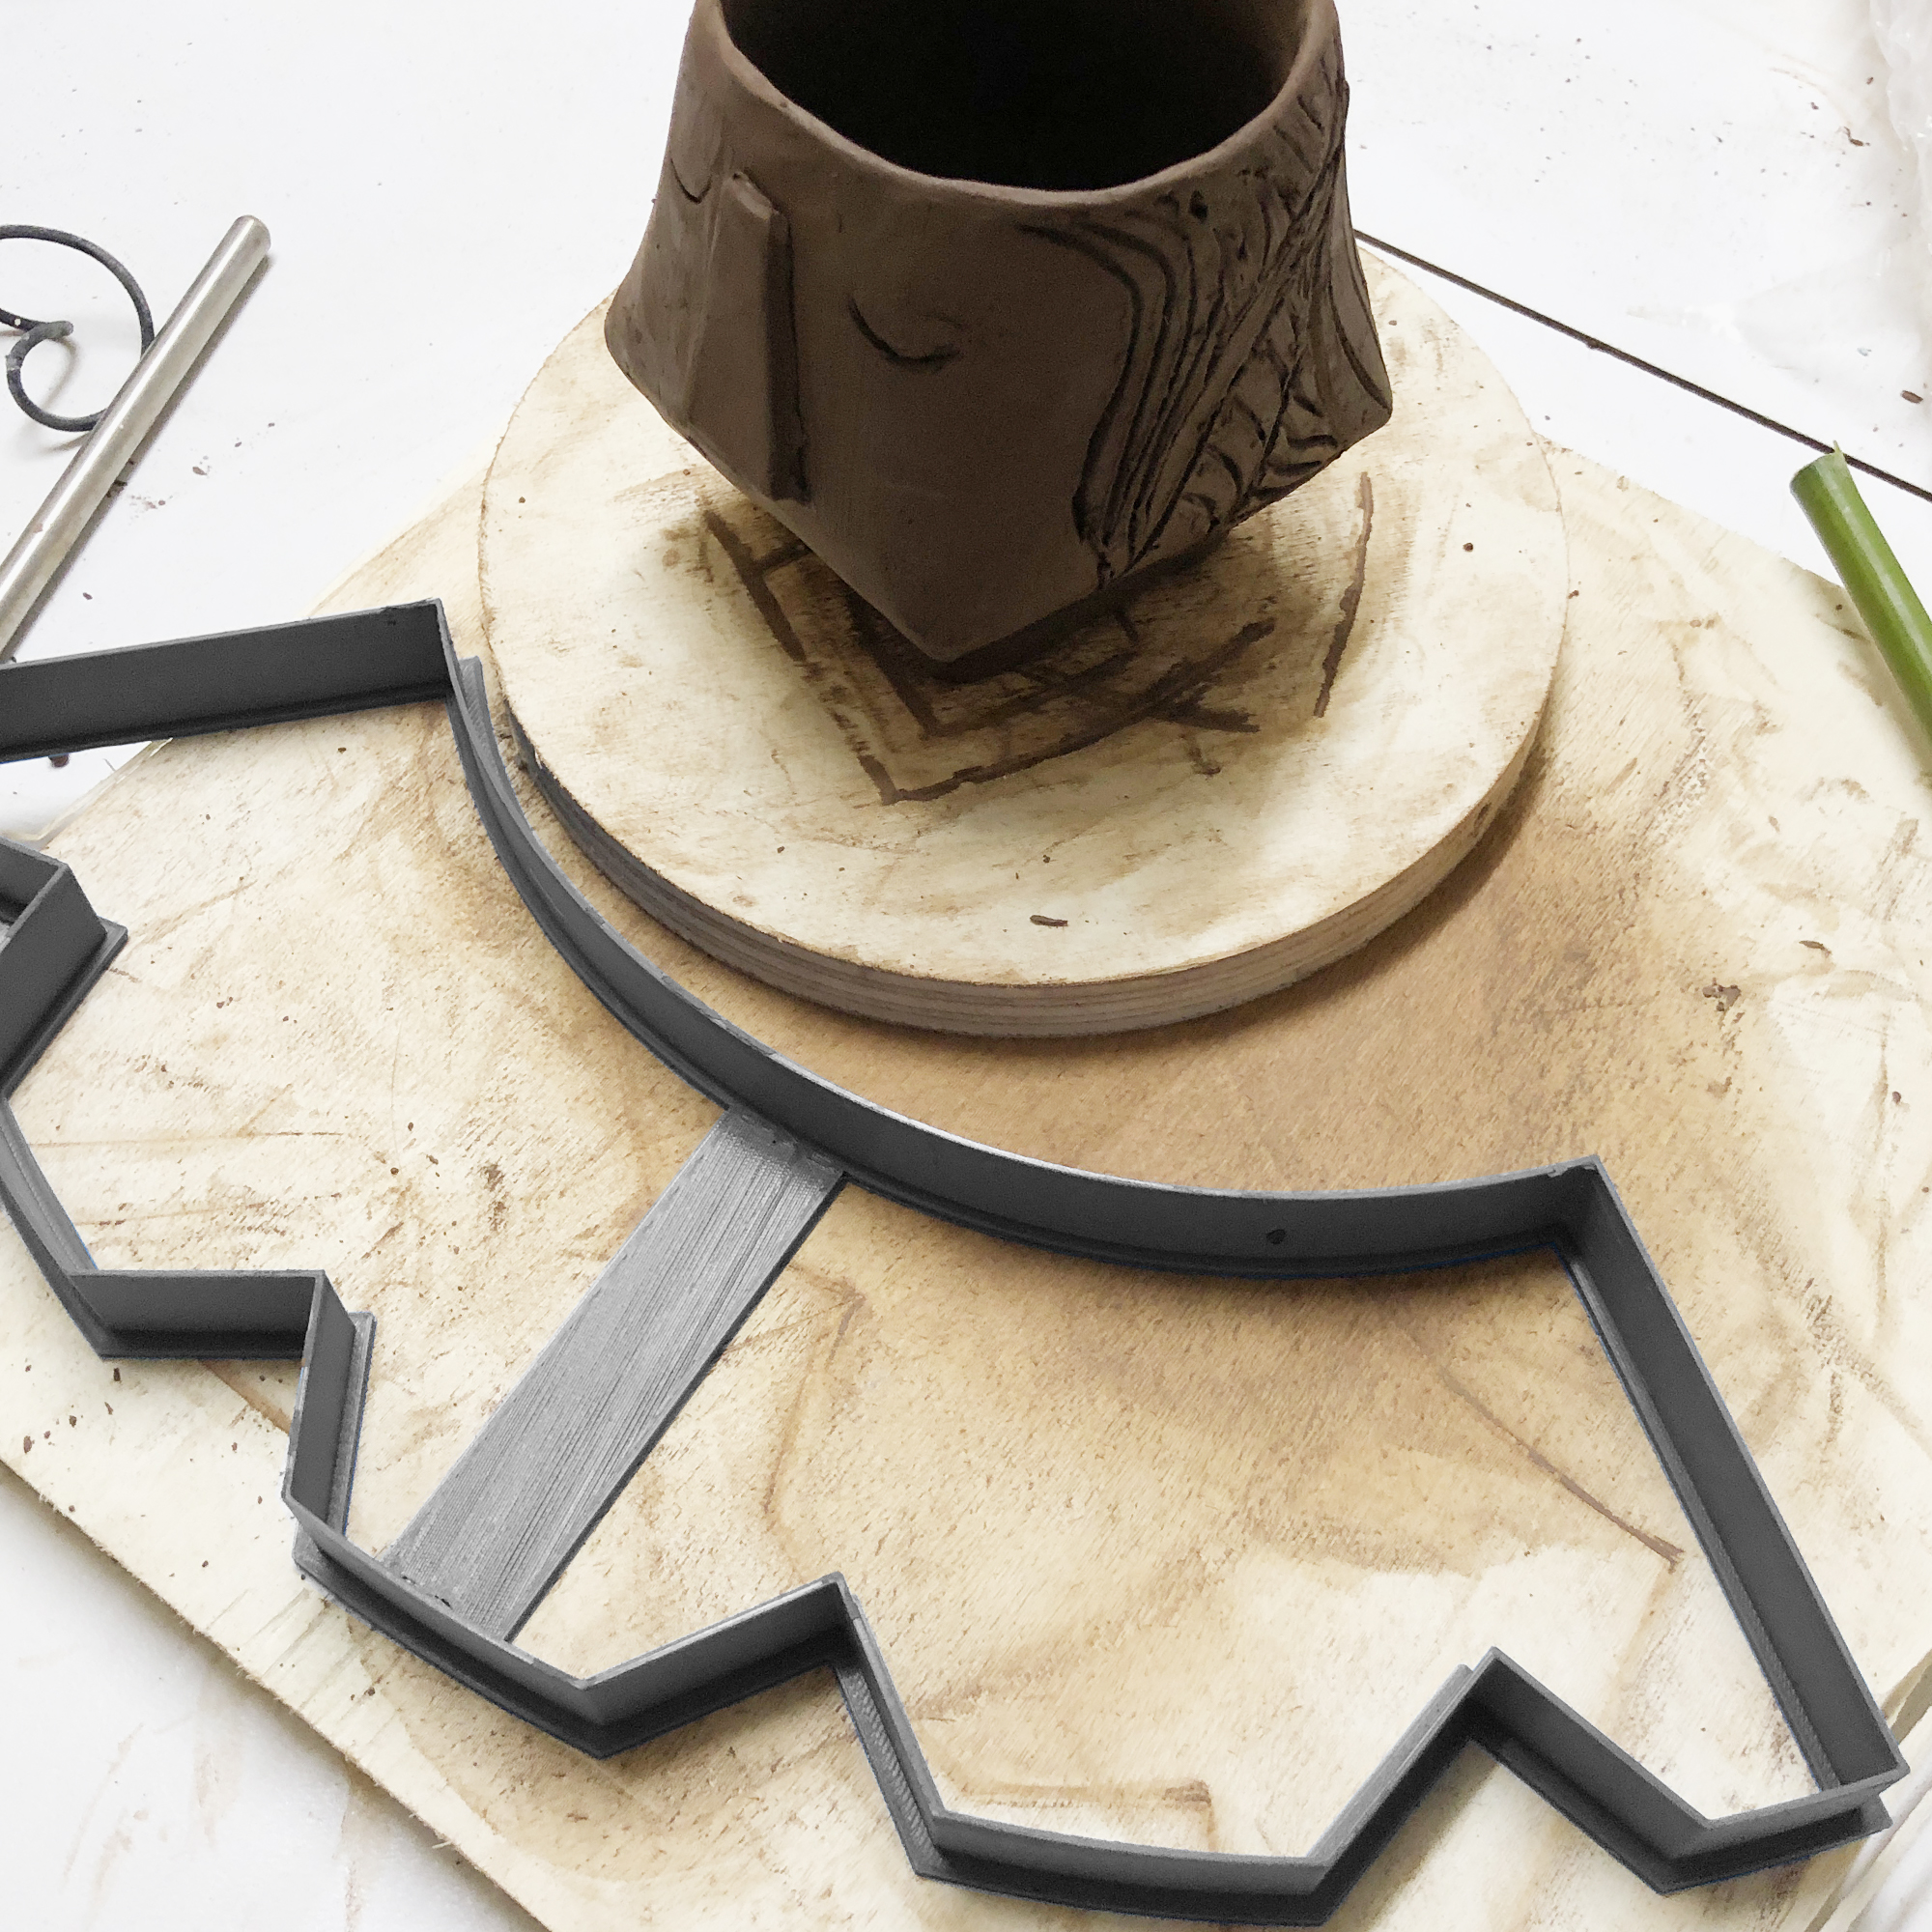 Studio Renate - Cutters, Textures and Tools for ceramic projects